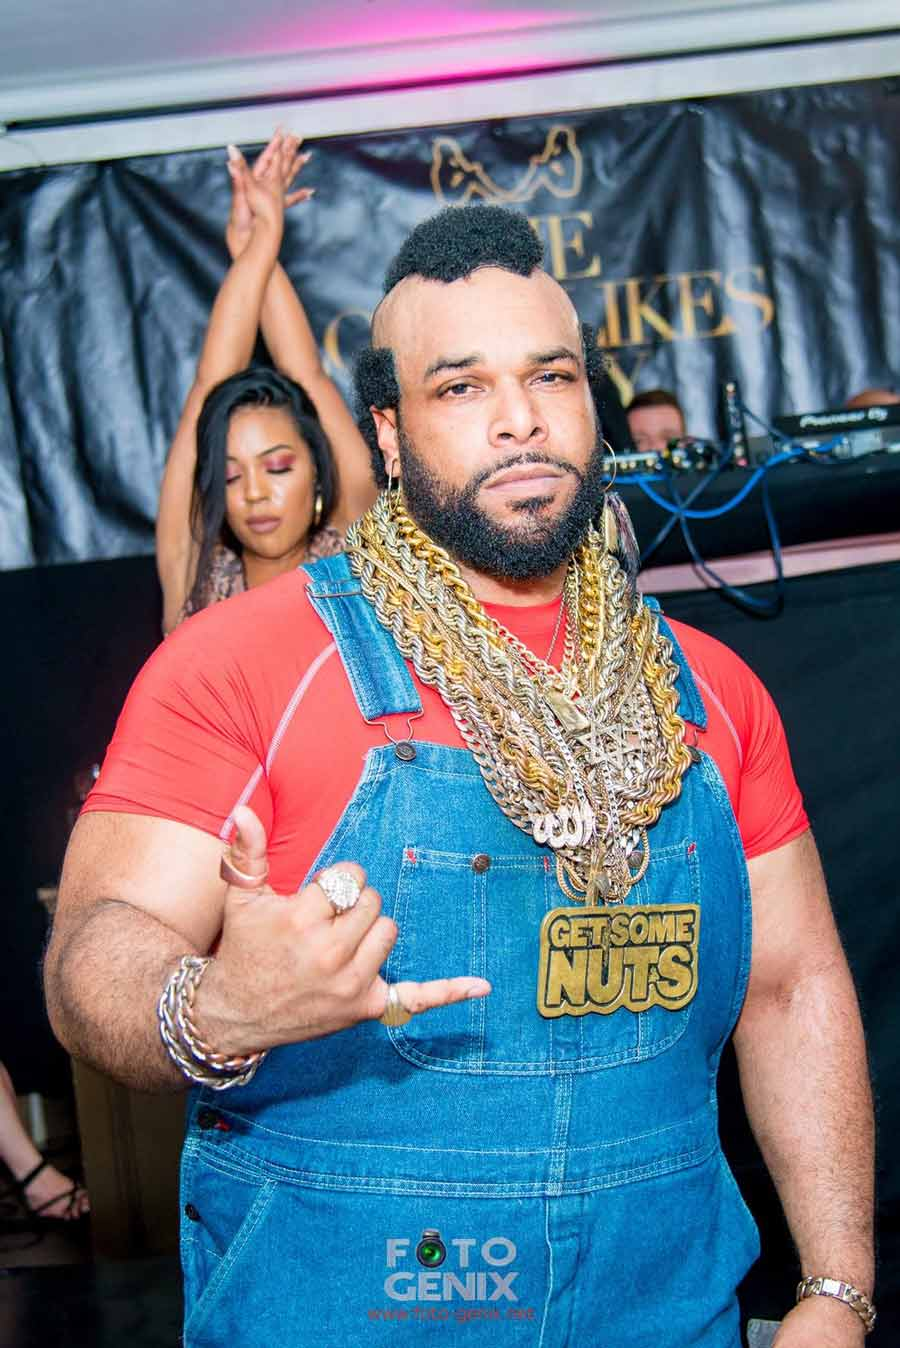 Mr T Lookalike Get Some Nuts Party Events 80s events